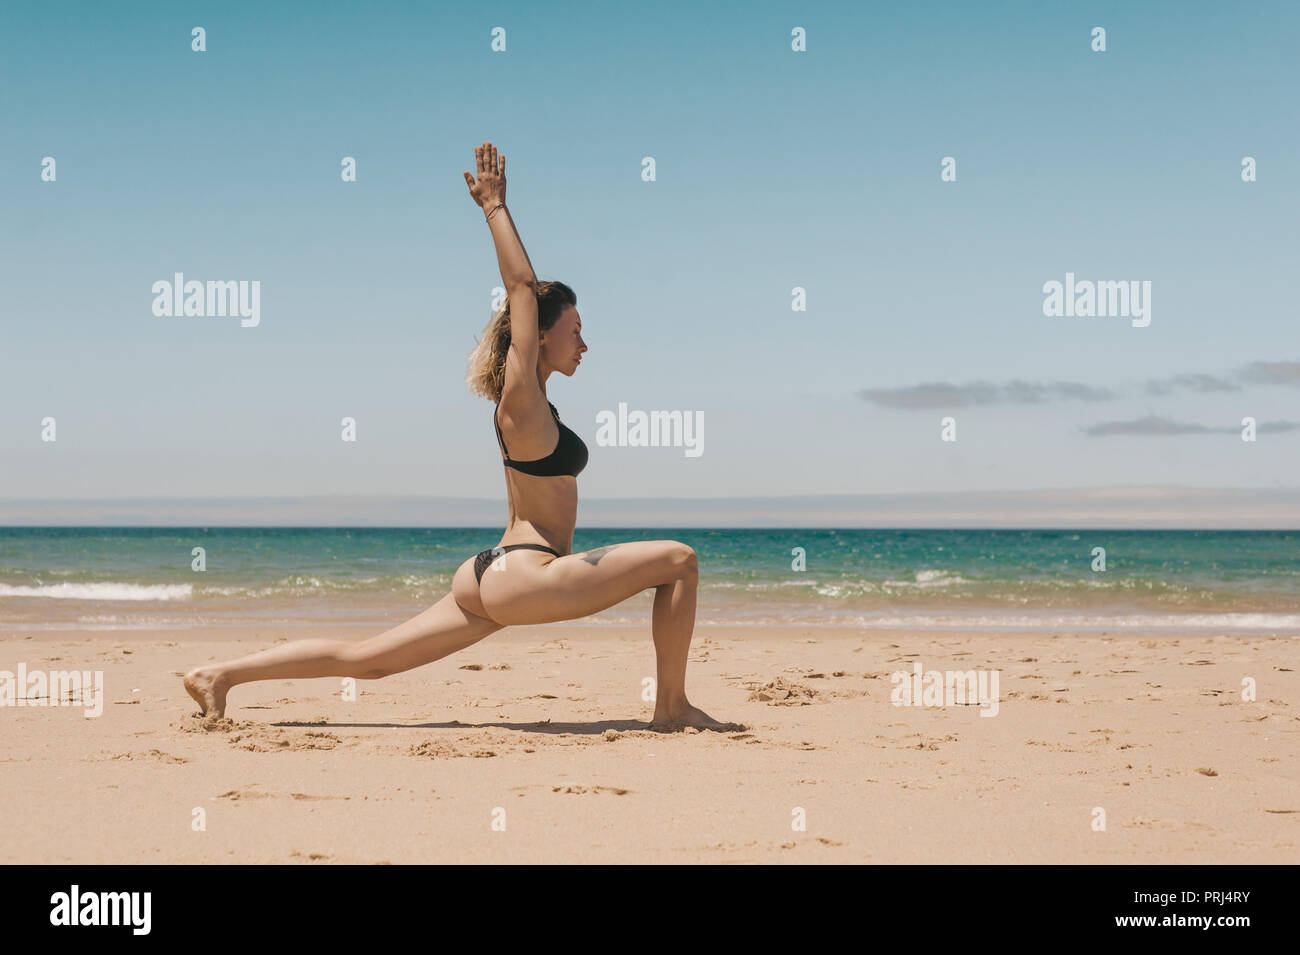 side view of young woman in black bikini standing in Warrior yoga position on sandy beach - Stock Image